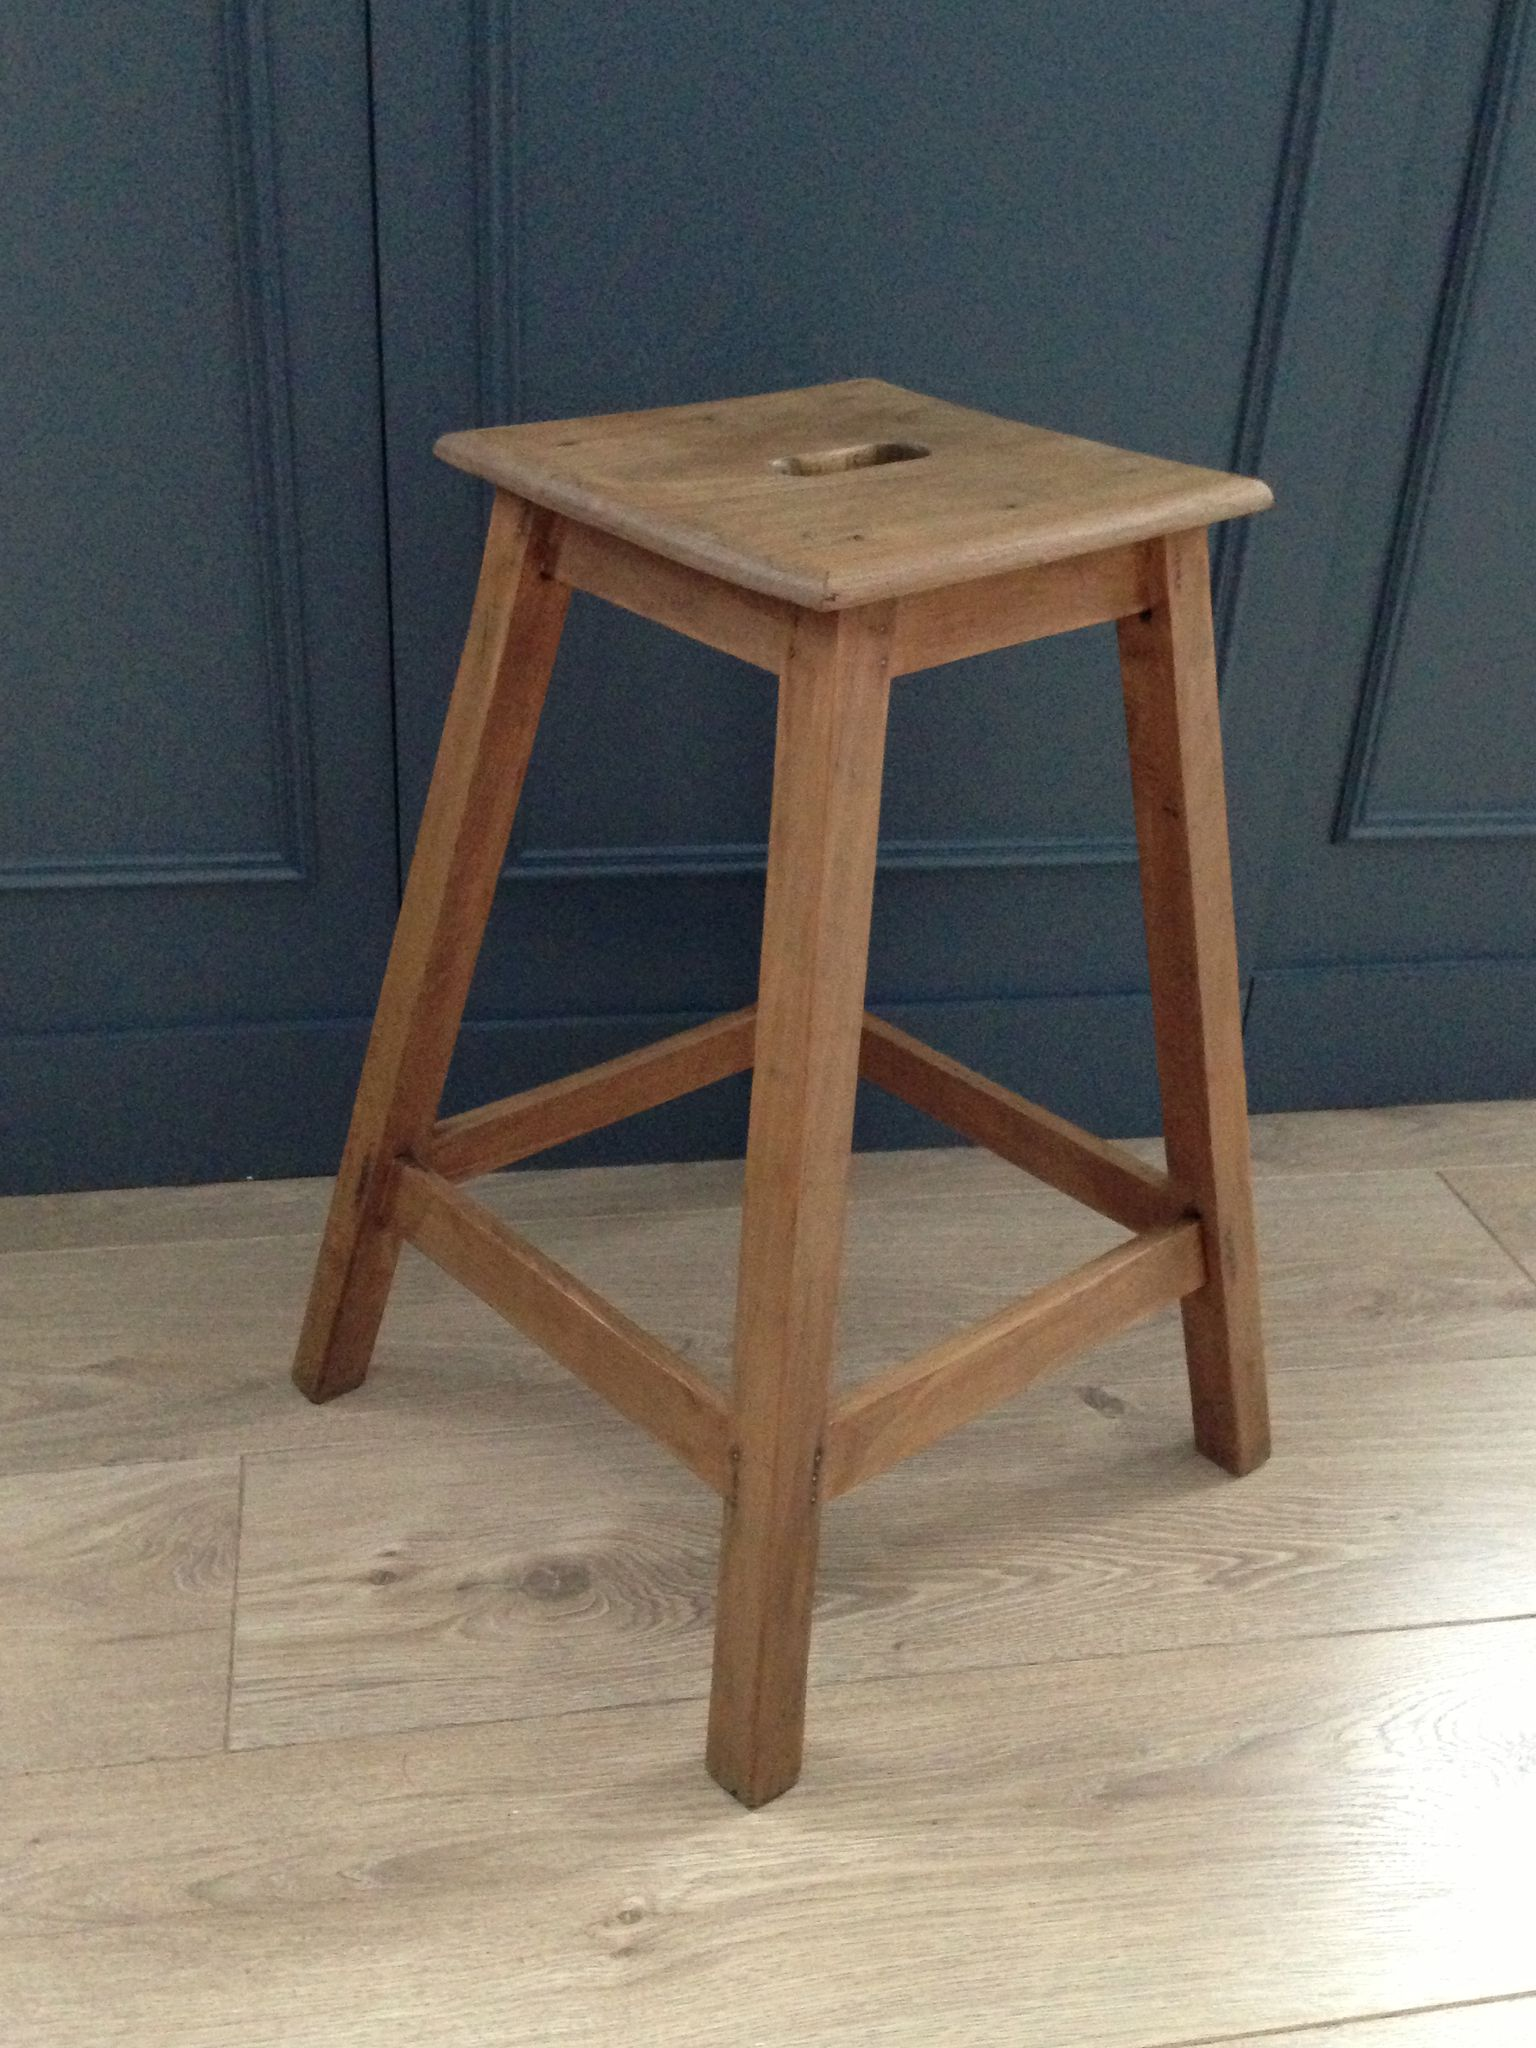 Tabouret Ancien En Bois Album Photos Rtro